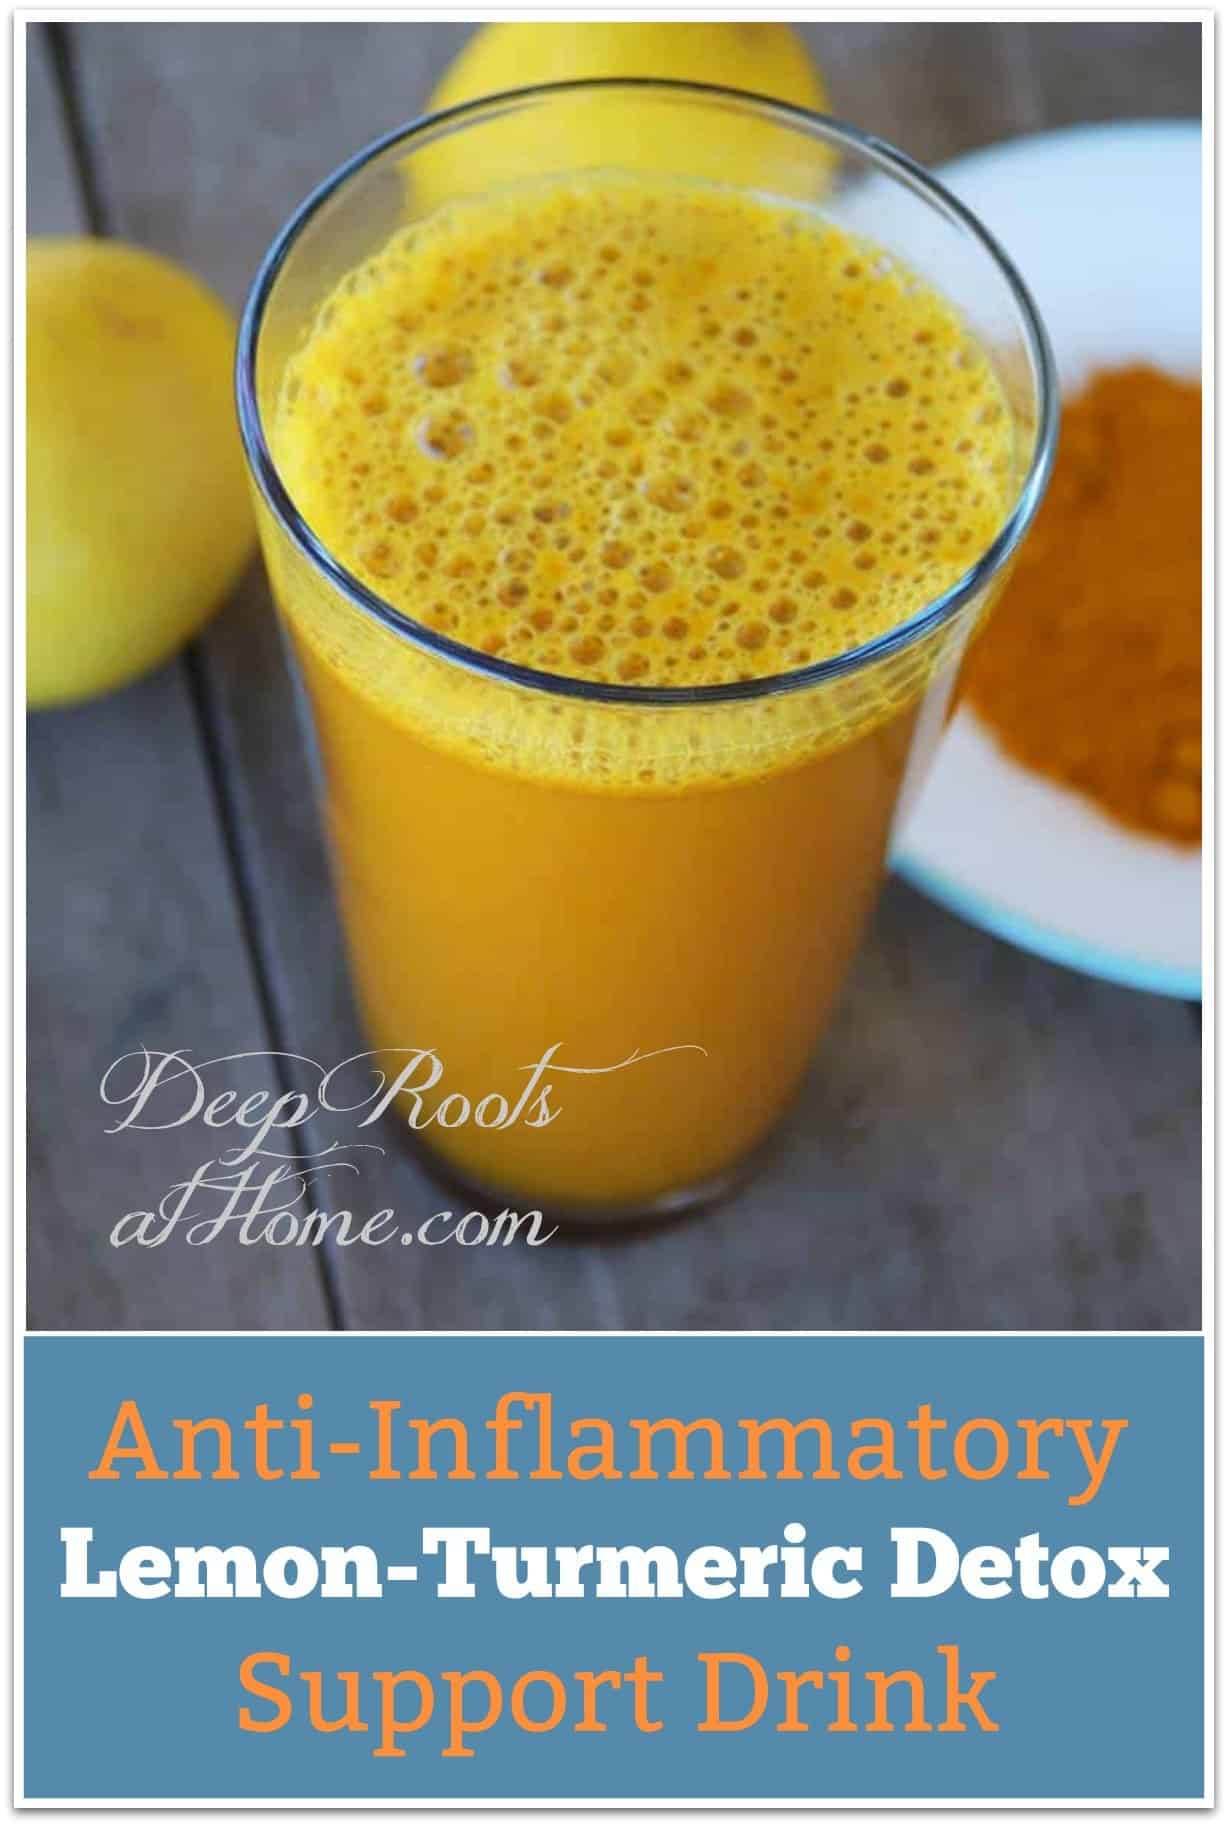 Anti-Inflammatory Lemon-Turmeric Detox Support Drink. A post-workout turmeric lemonade